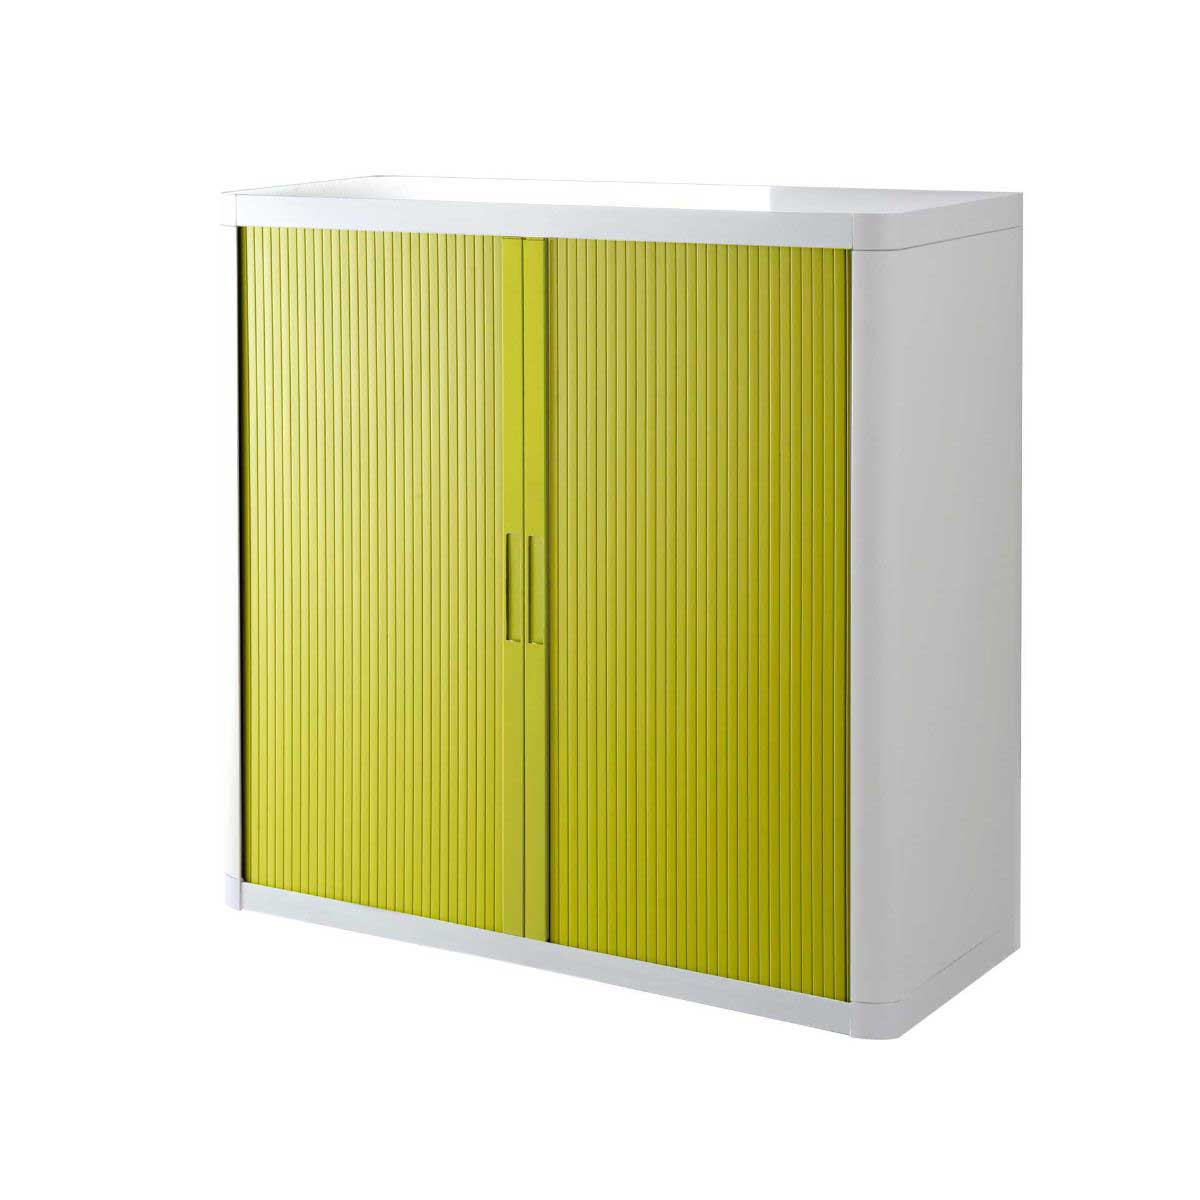 Easy Office Tambour Unit 1 Metre, White/Green.